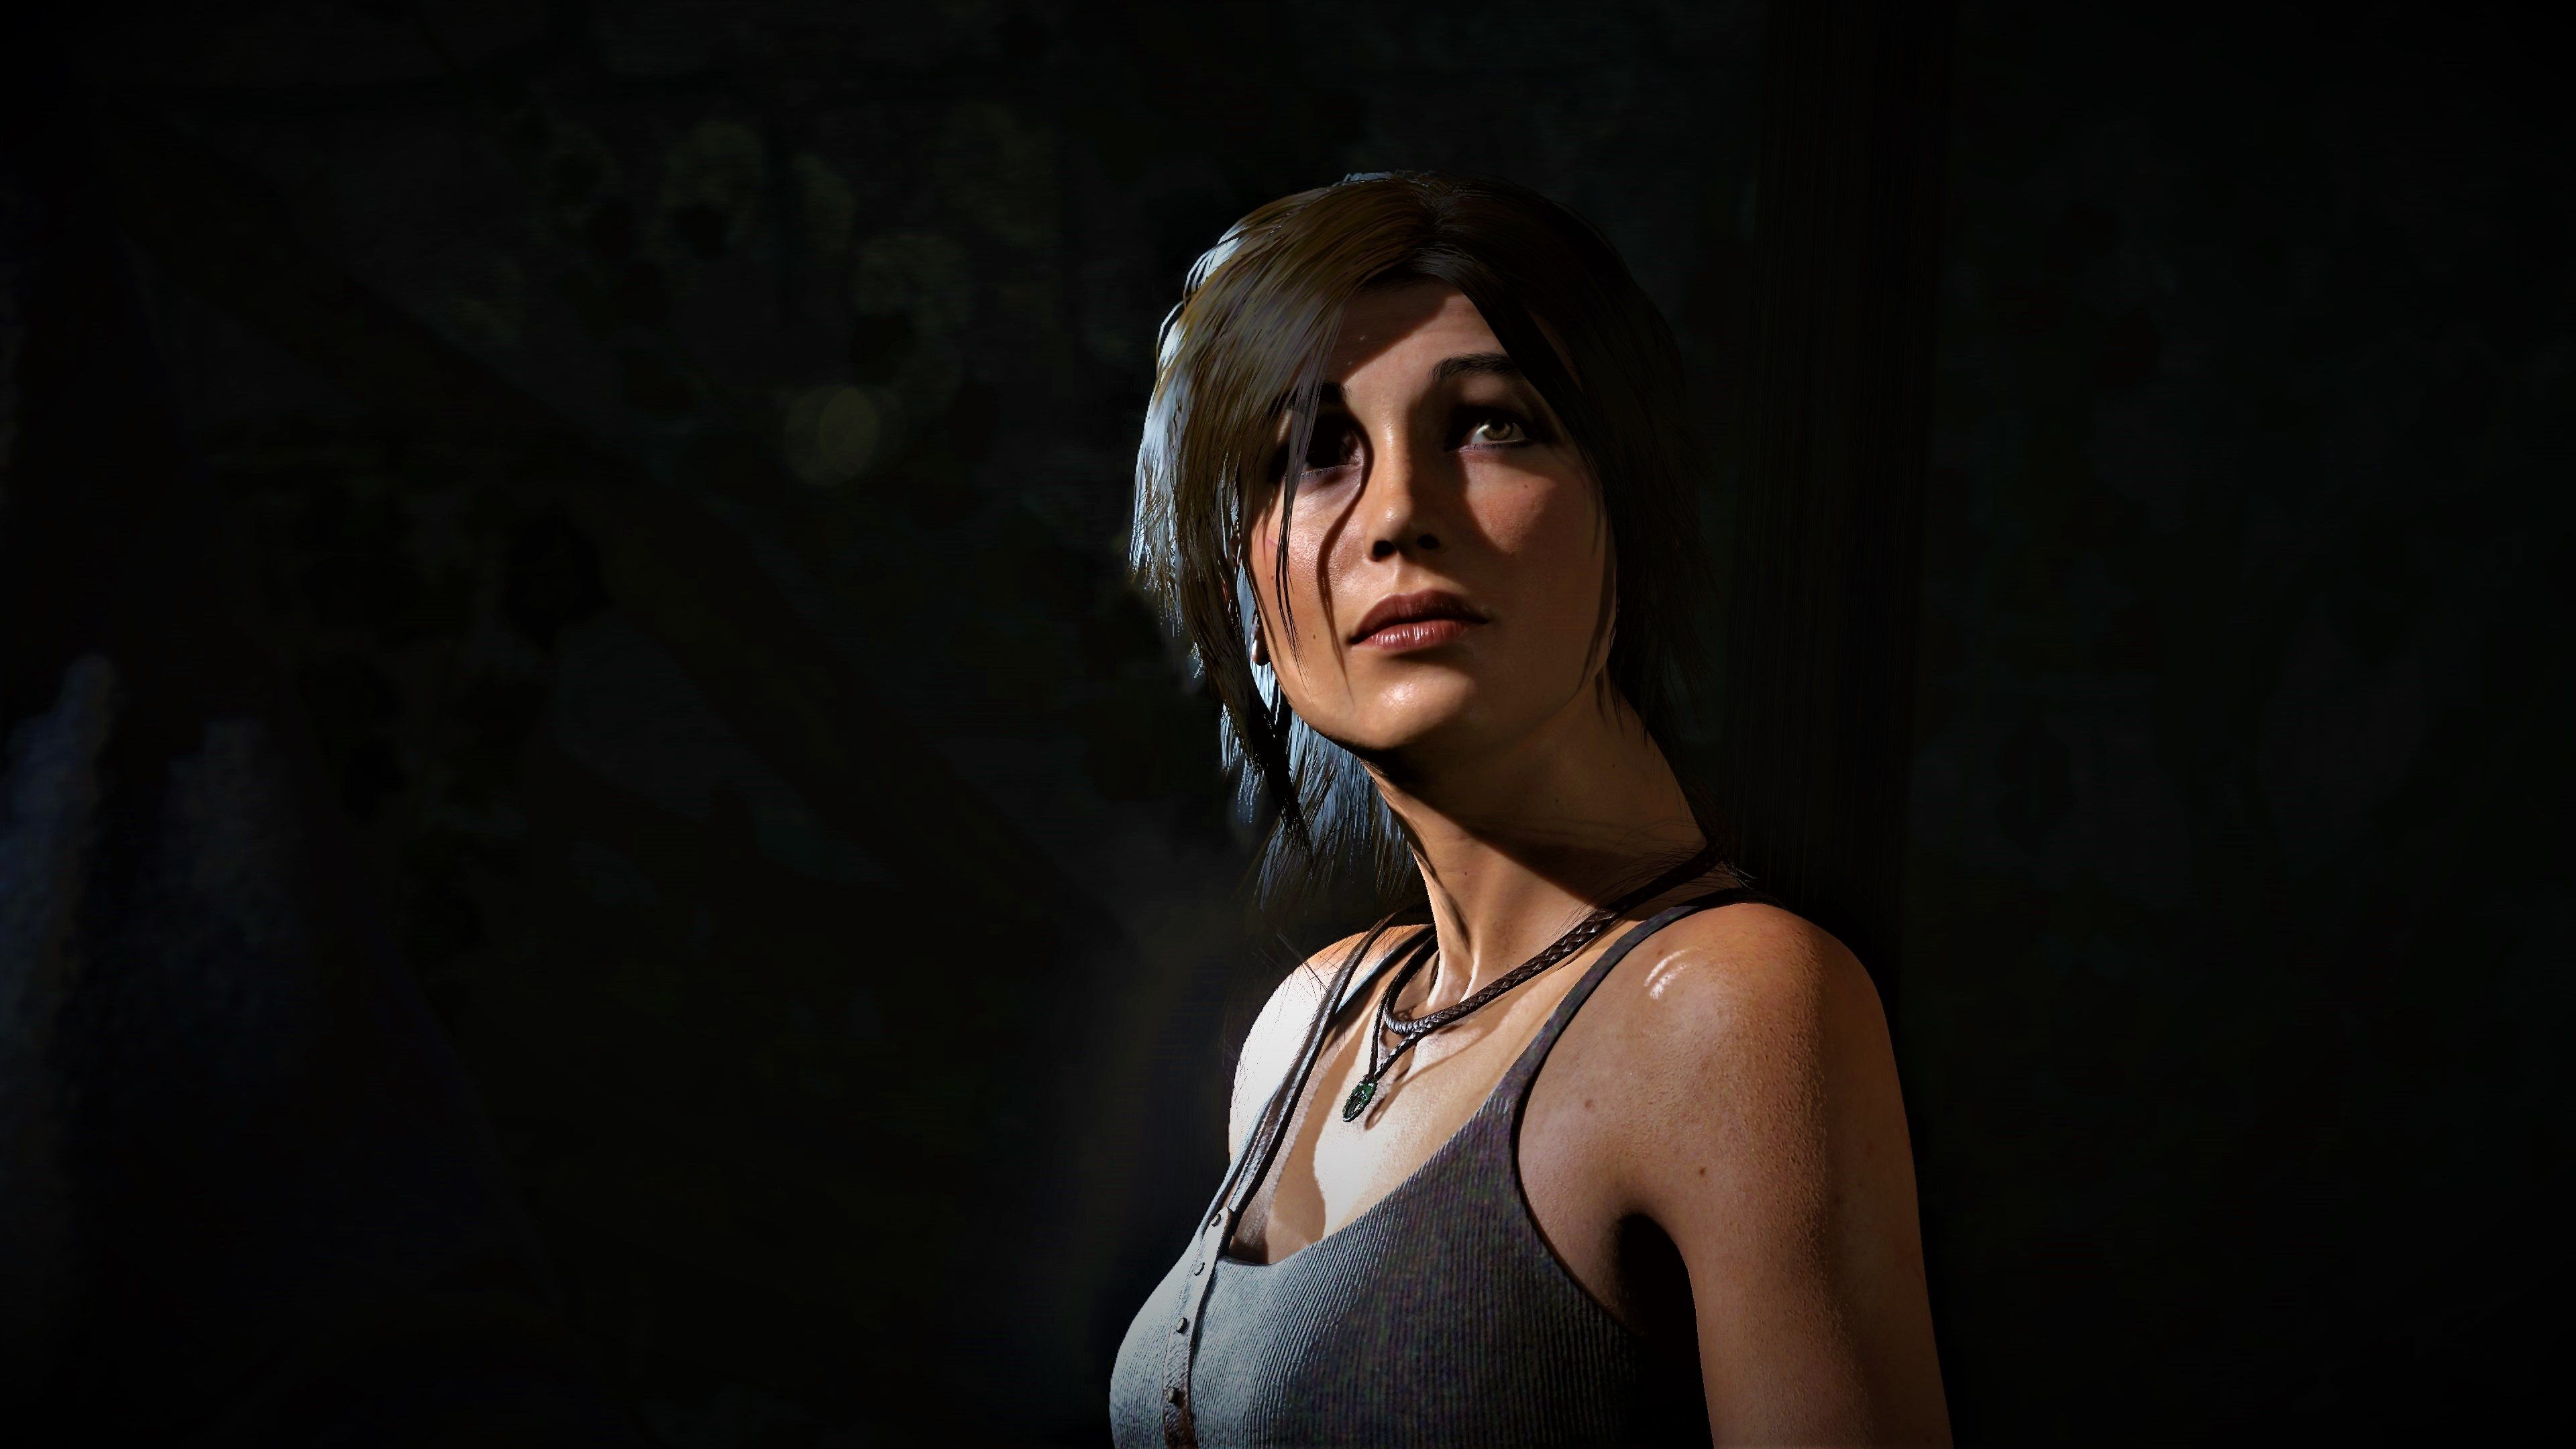 3840x2160 rise of the tomb raider 4k high resolution image